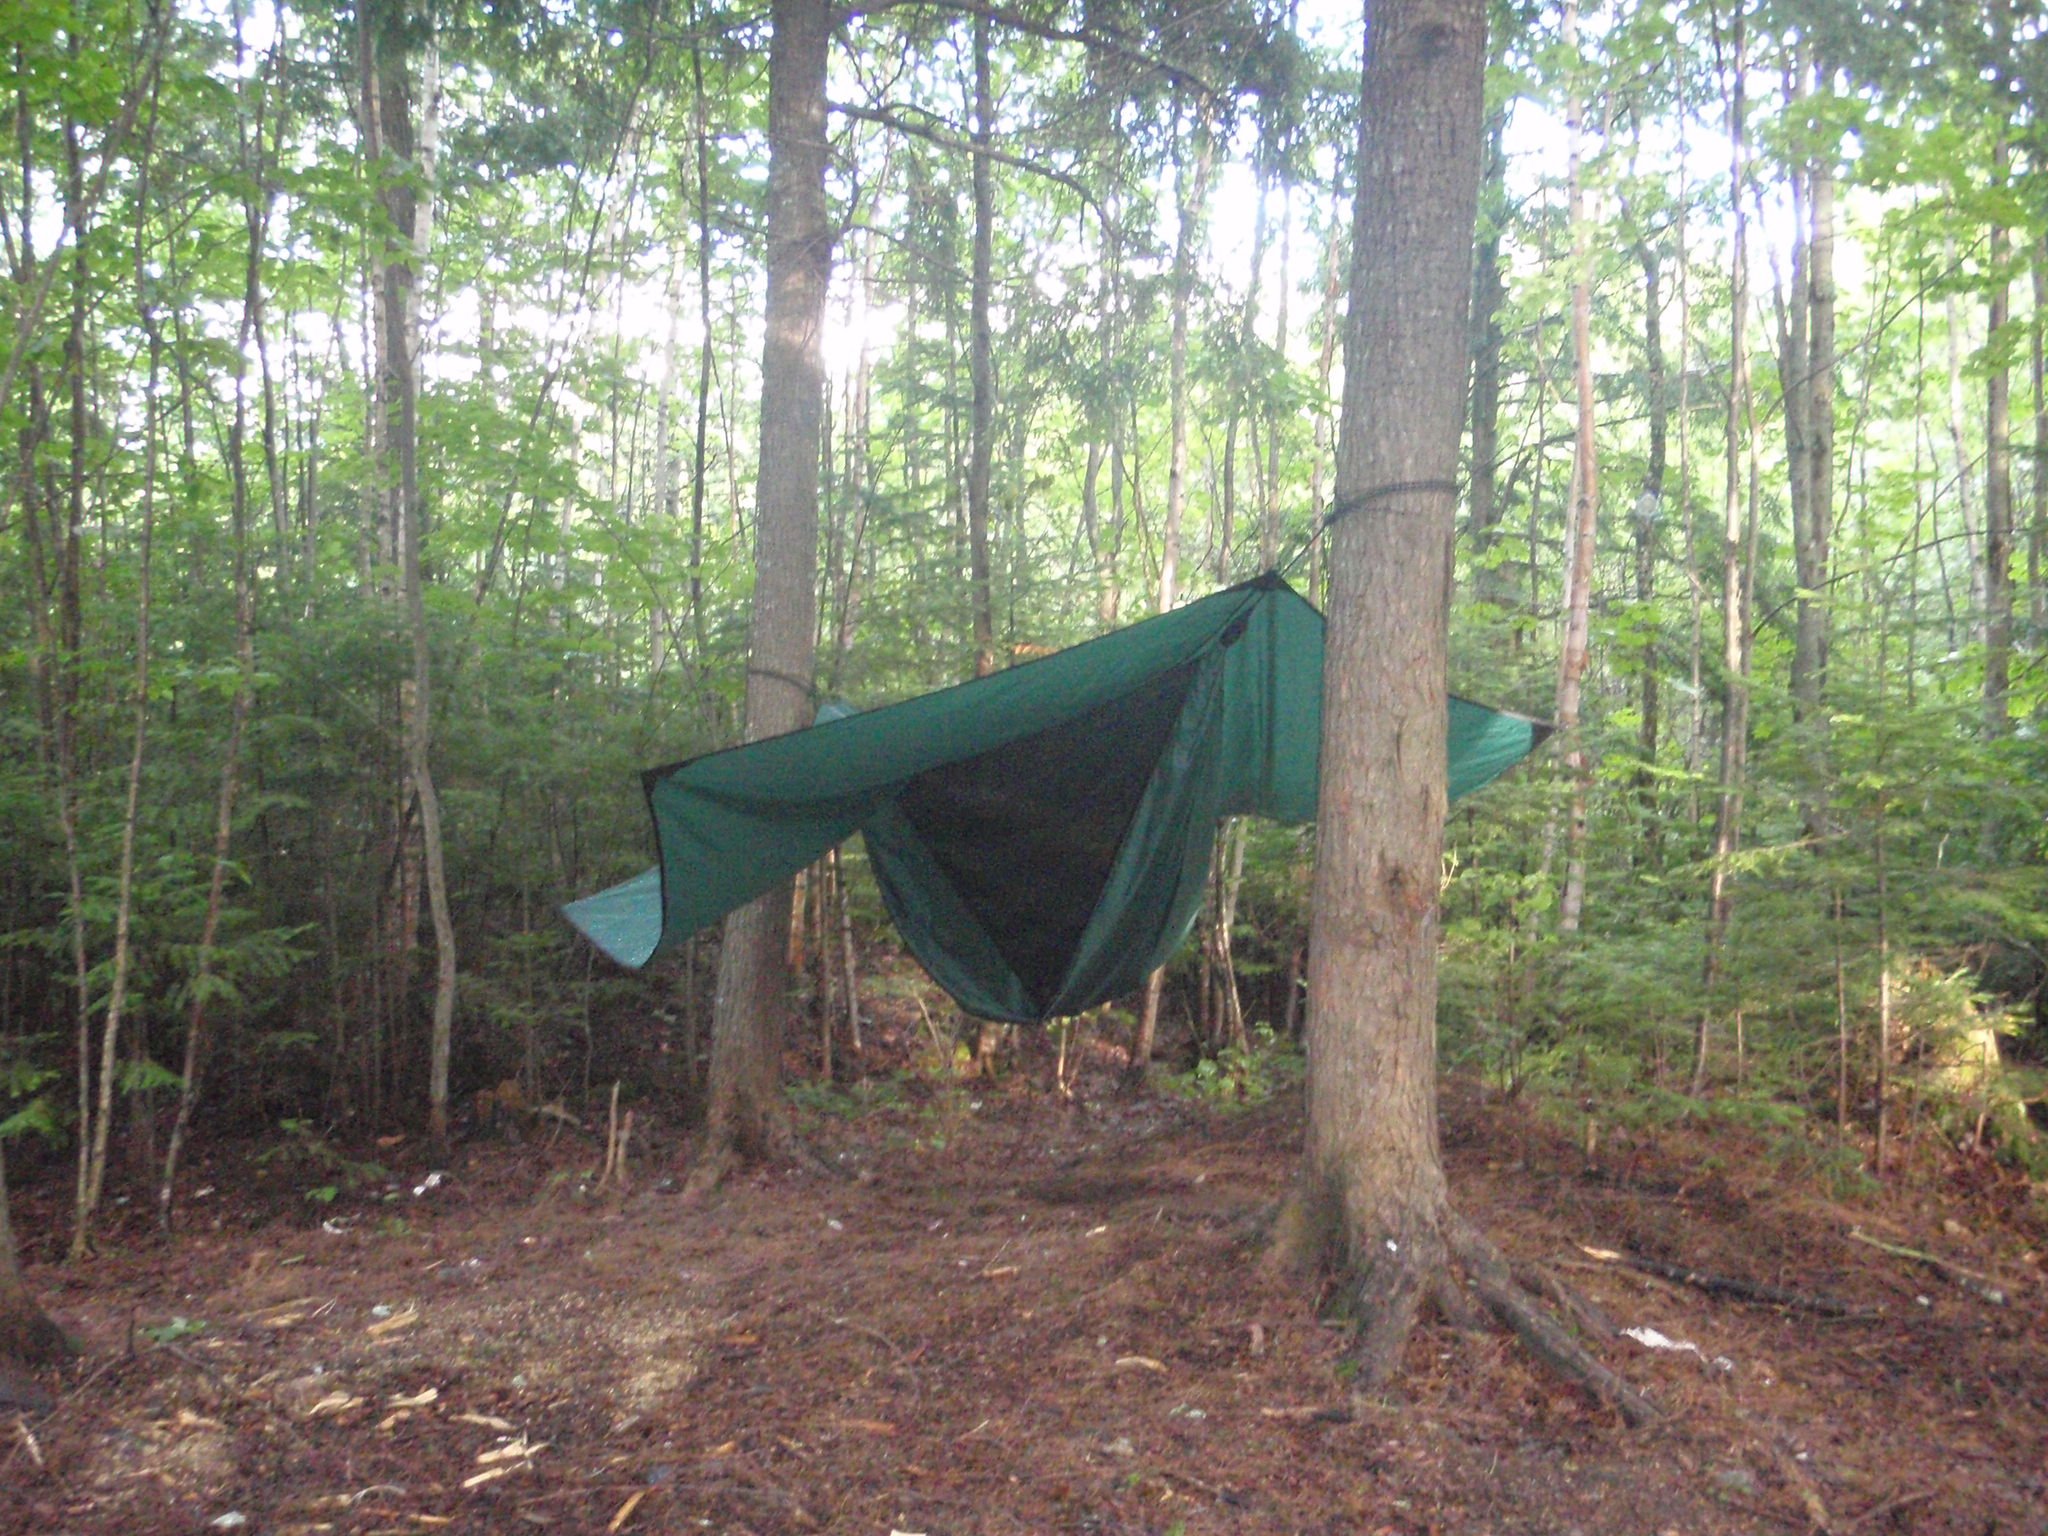 Hennessy Hammock Shelter Gear Review